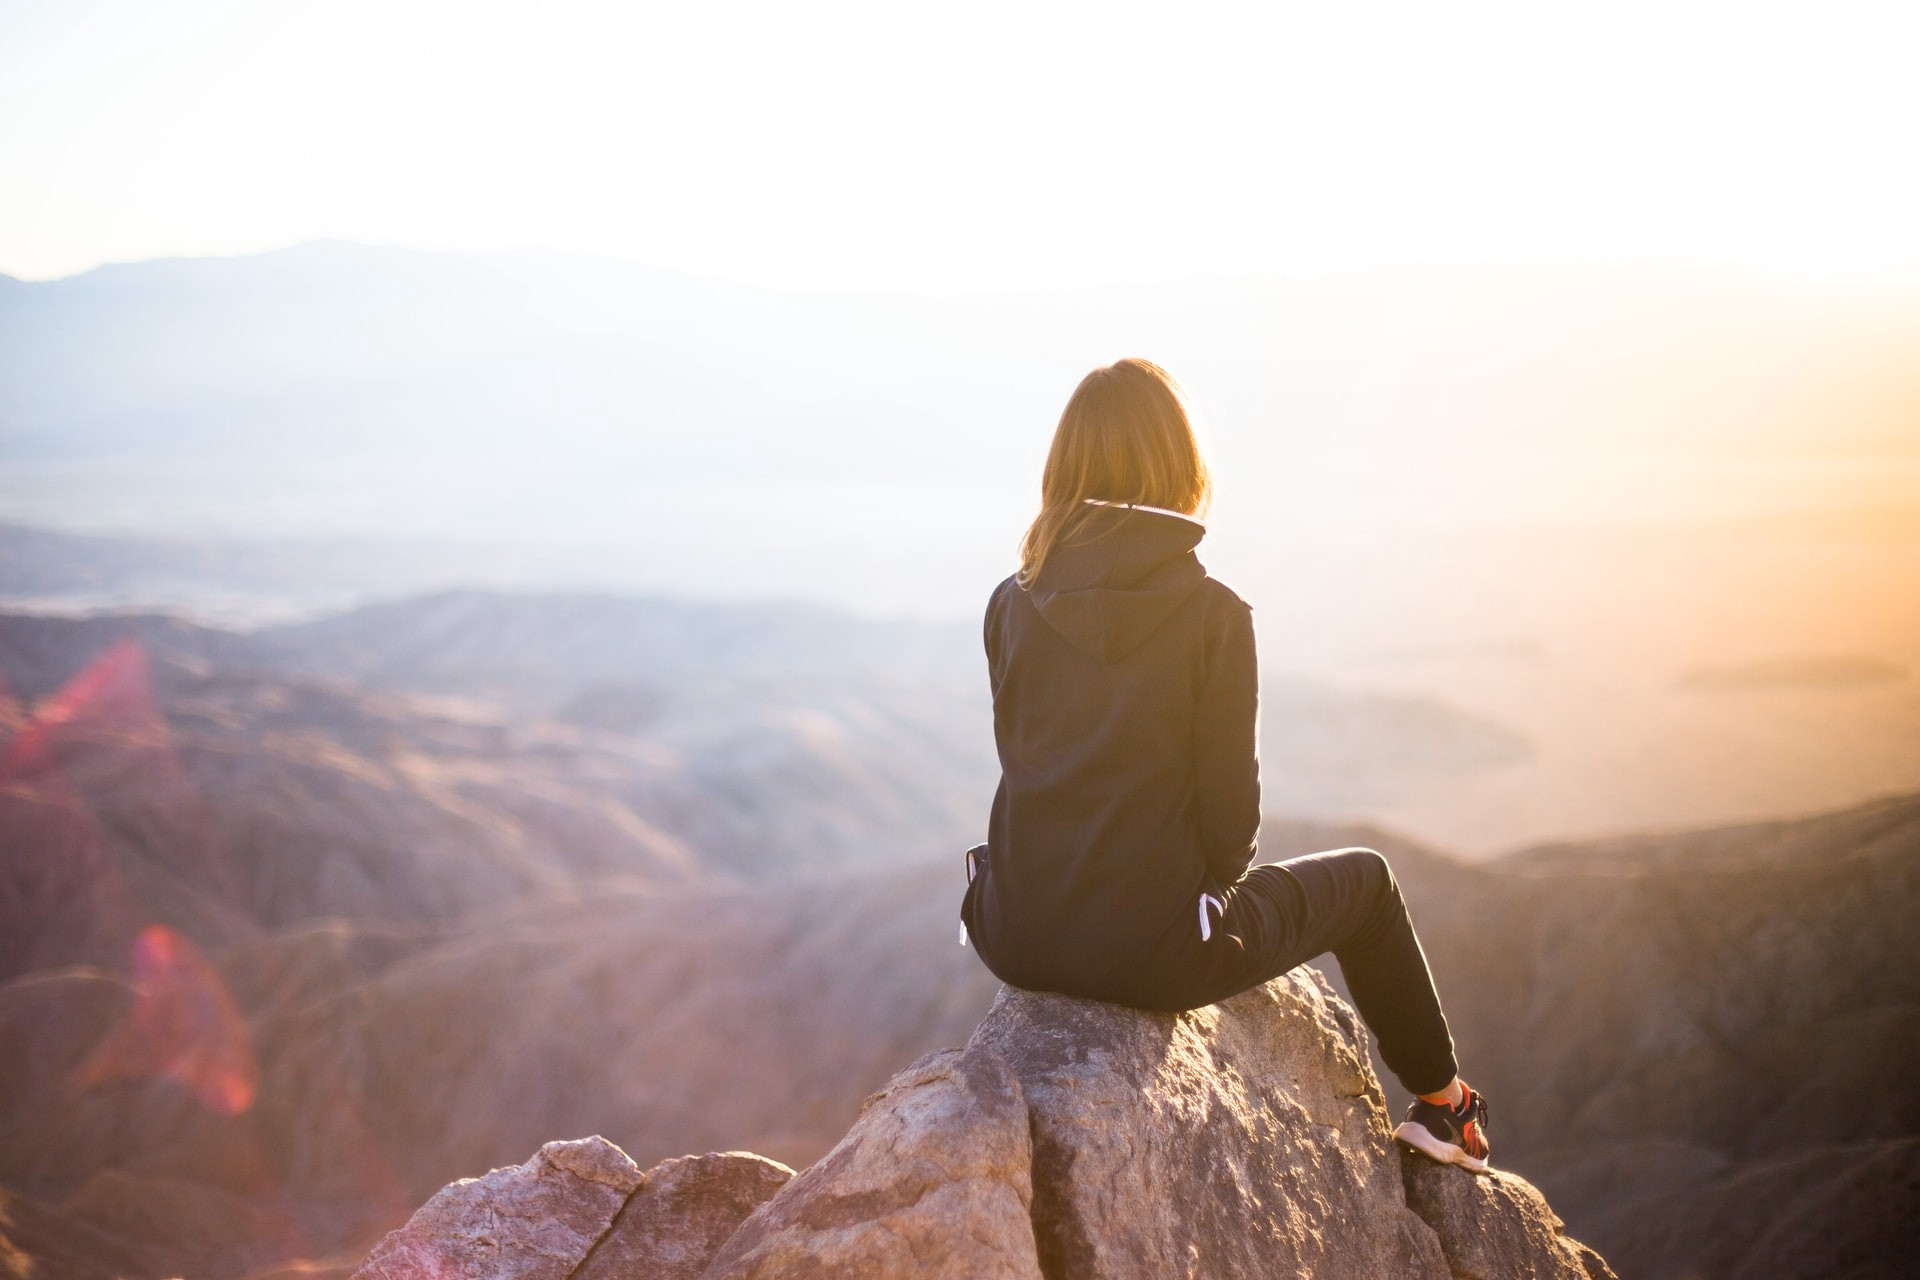 Woman on a top of a mountain looking at the view